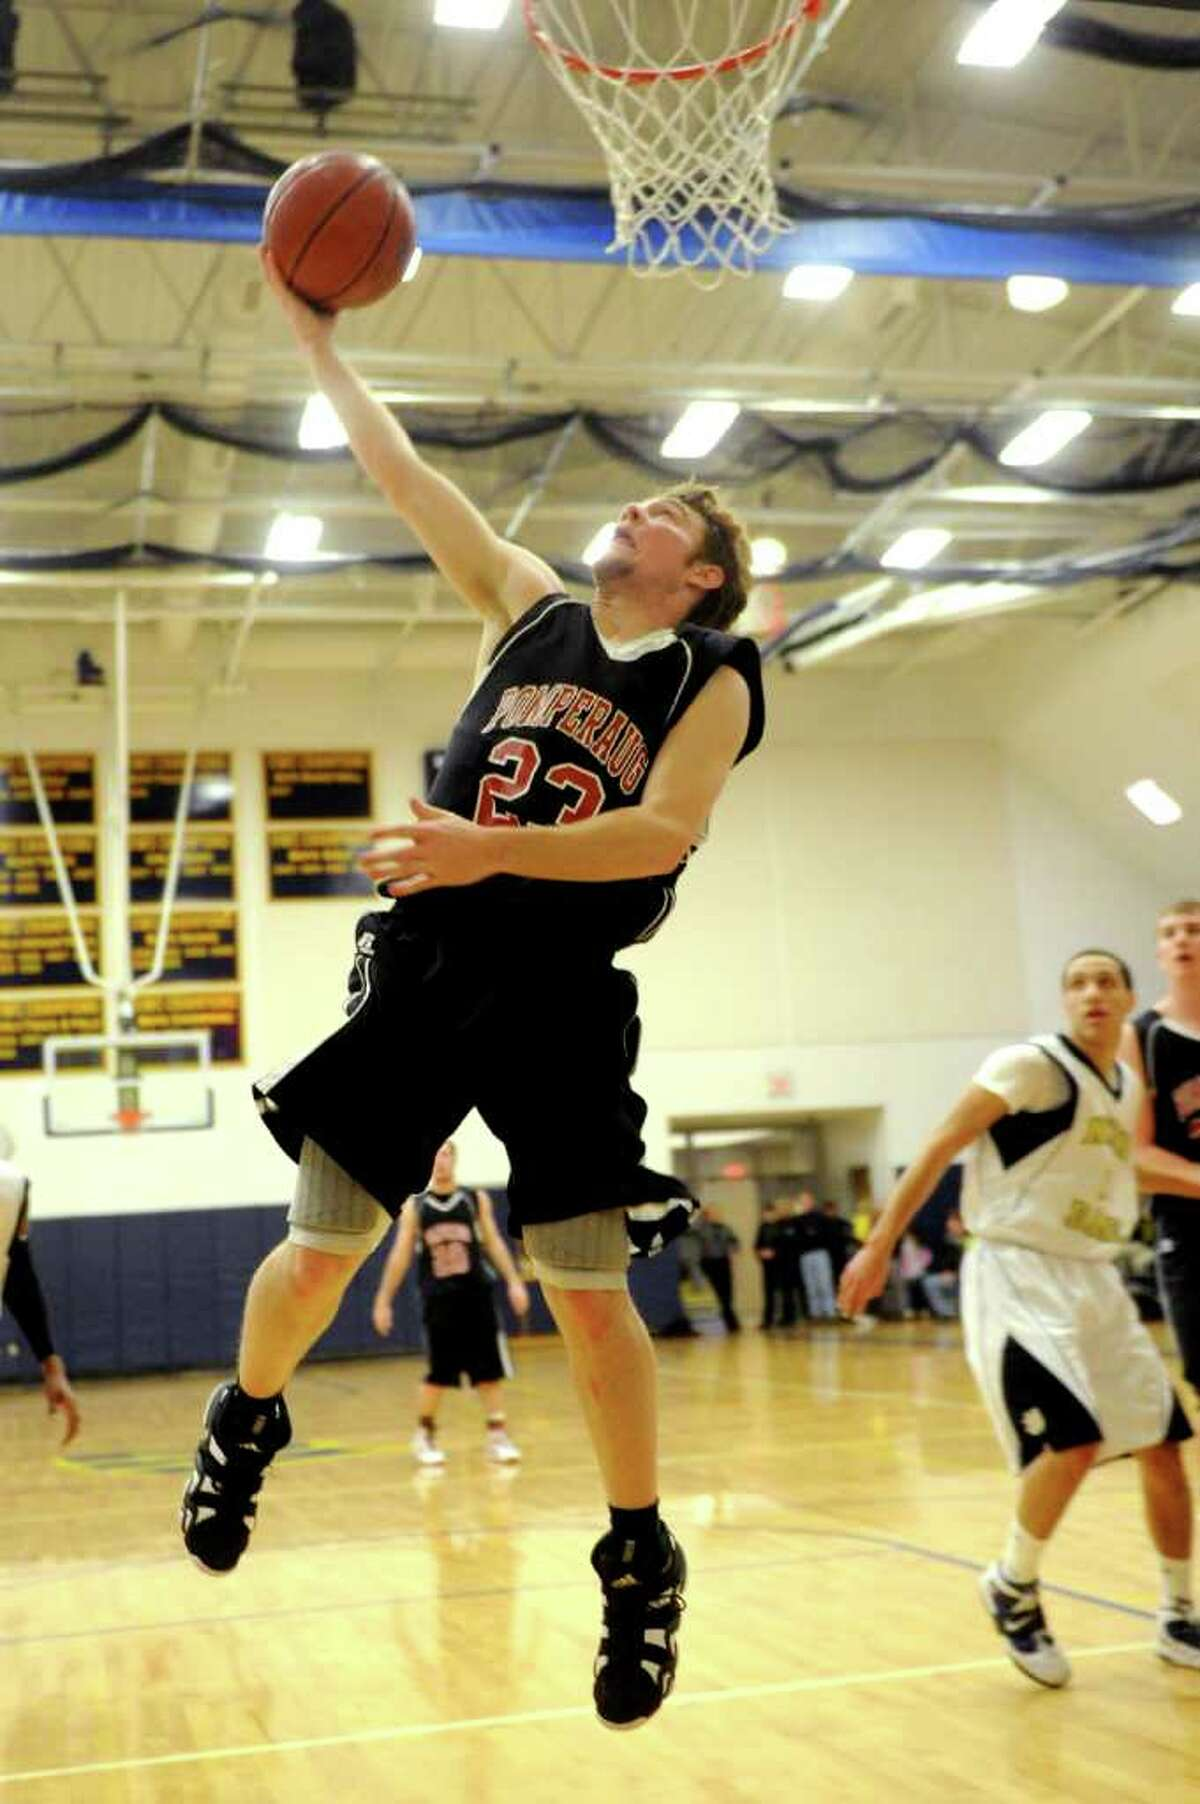 Pomperaug's Brent Pelella takes a shot during Thursday's SWC boys basketball final at Weston High School on March 3, 2011.